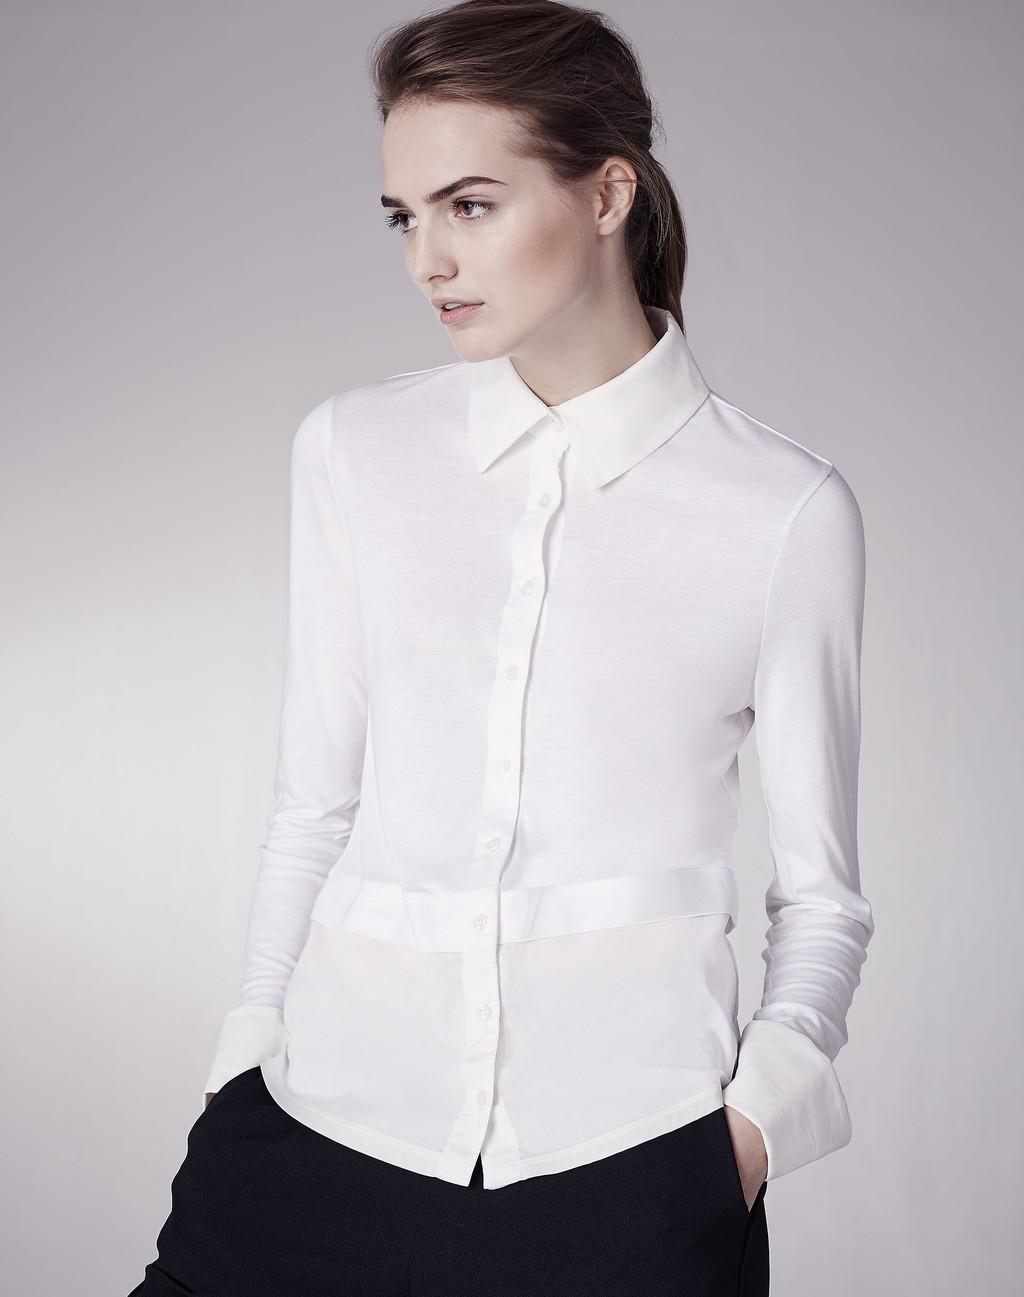 The Cuff + Tail Layer Shirt White - neckline: shirt collar/peter pan/zip with opening; pattern: plain; style: shirt; predominant colour: white; occasions: work; length: standard; fibres: viscose/rayon - 100%; fit: body skimming; sleeve length: long sleeve; sleeve style: standard; texture group: crepes; pattern type: fabric; season: s/s 2016; wardrobe: basic